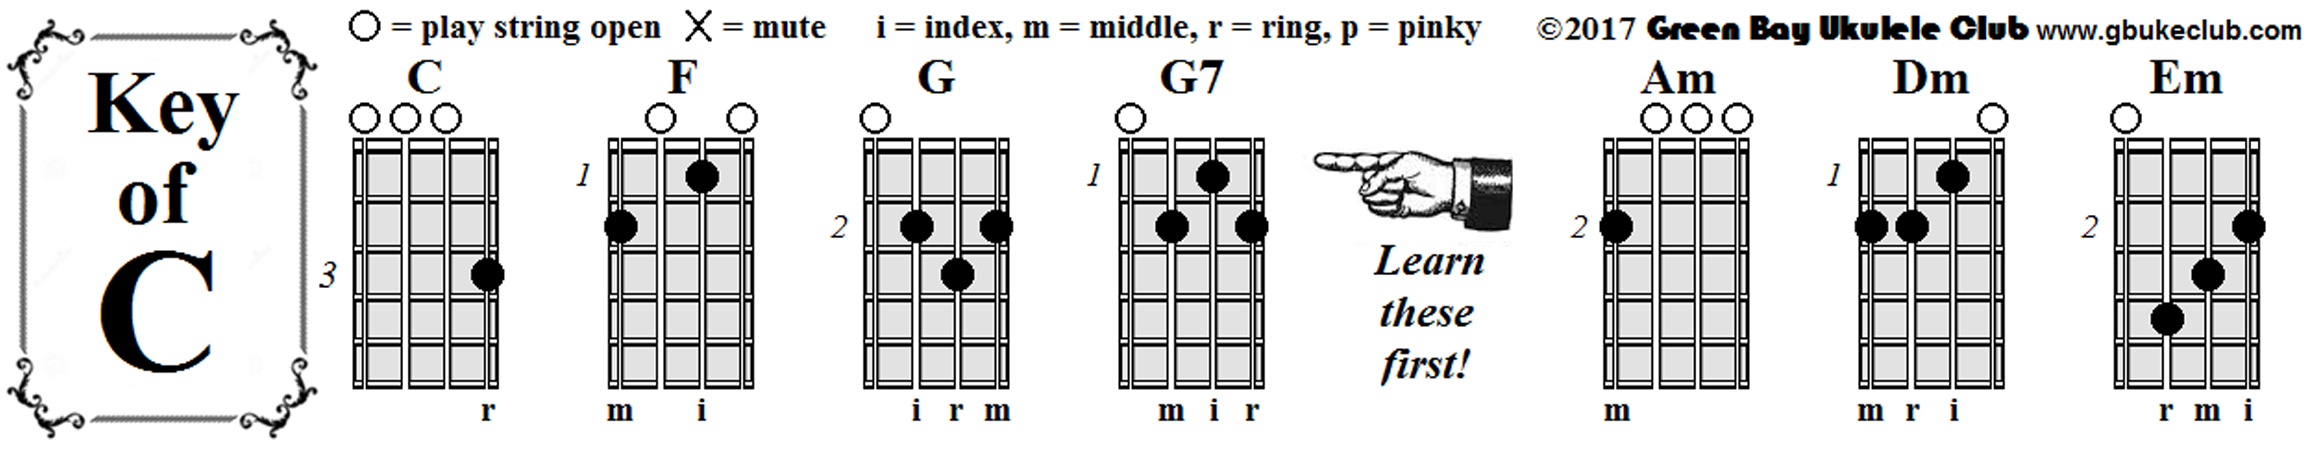 Free Easy To Play Ukulele Sheet Music Downloads For Beginners Gb